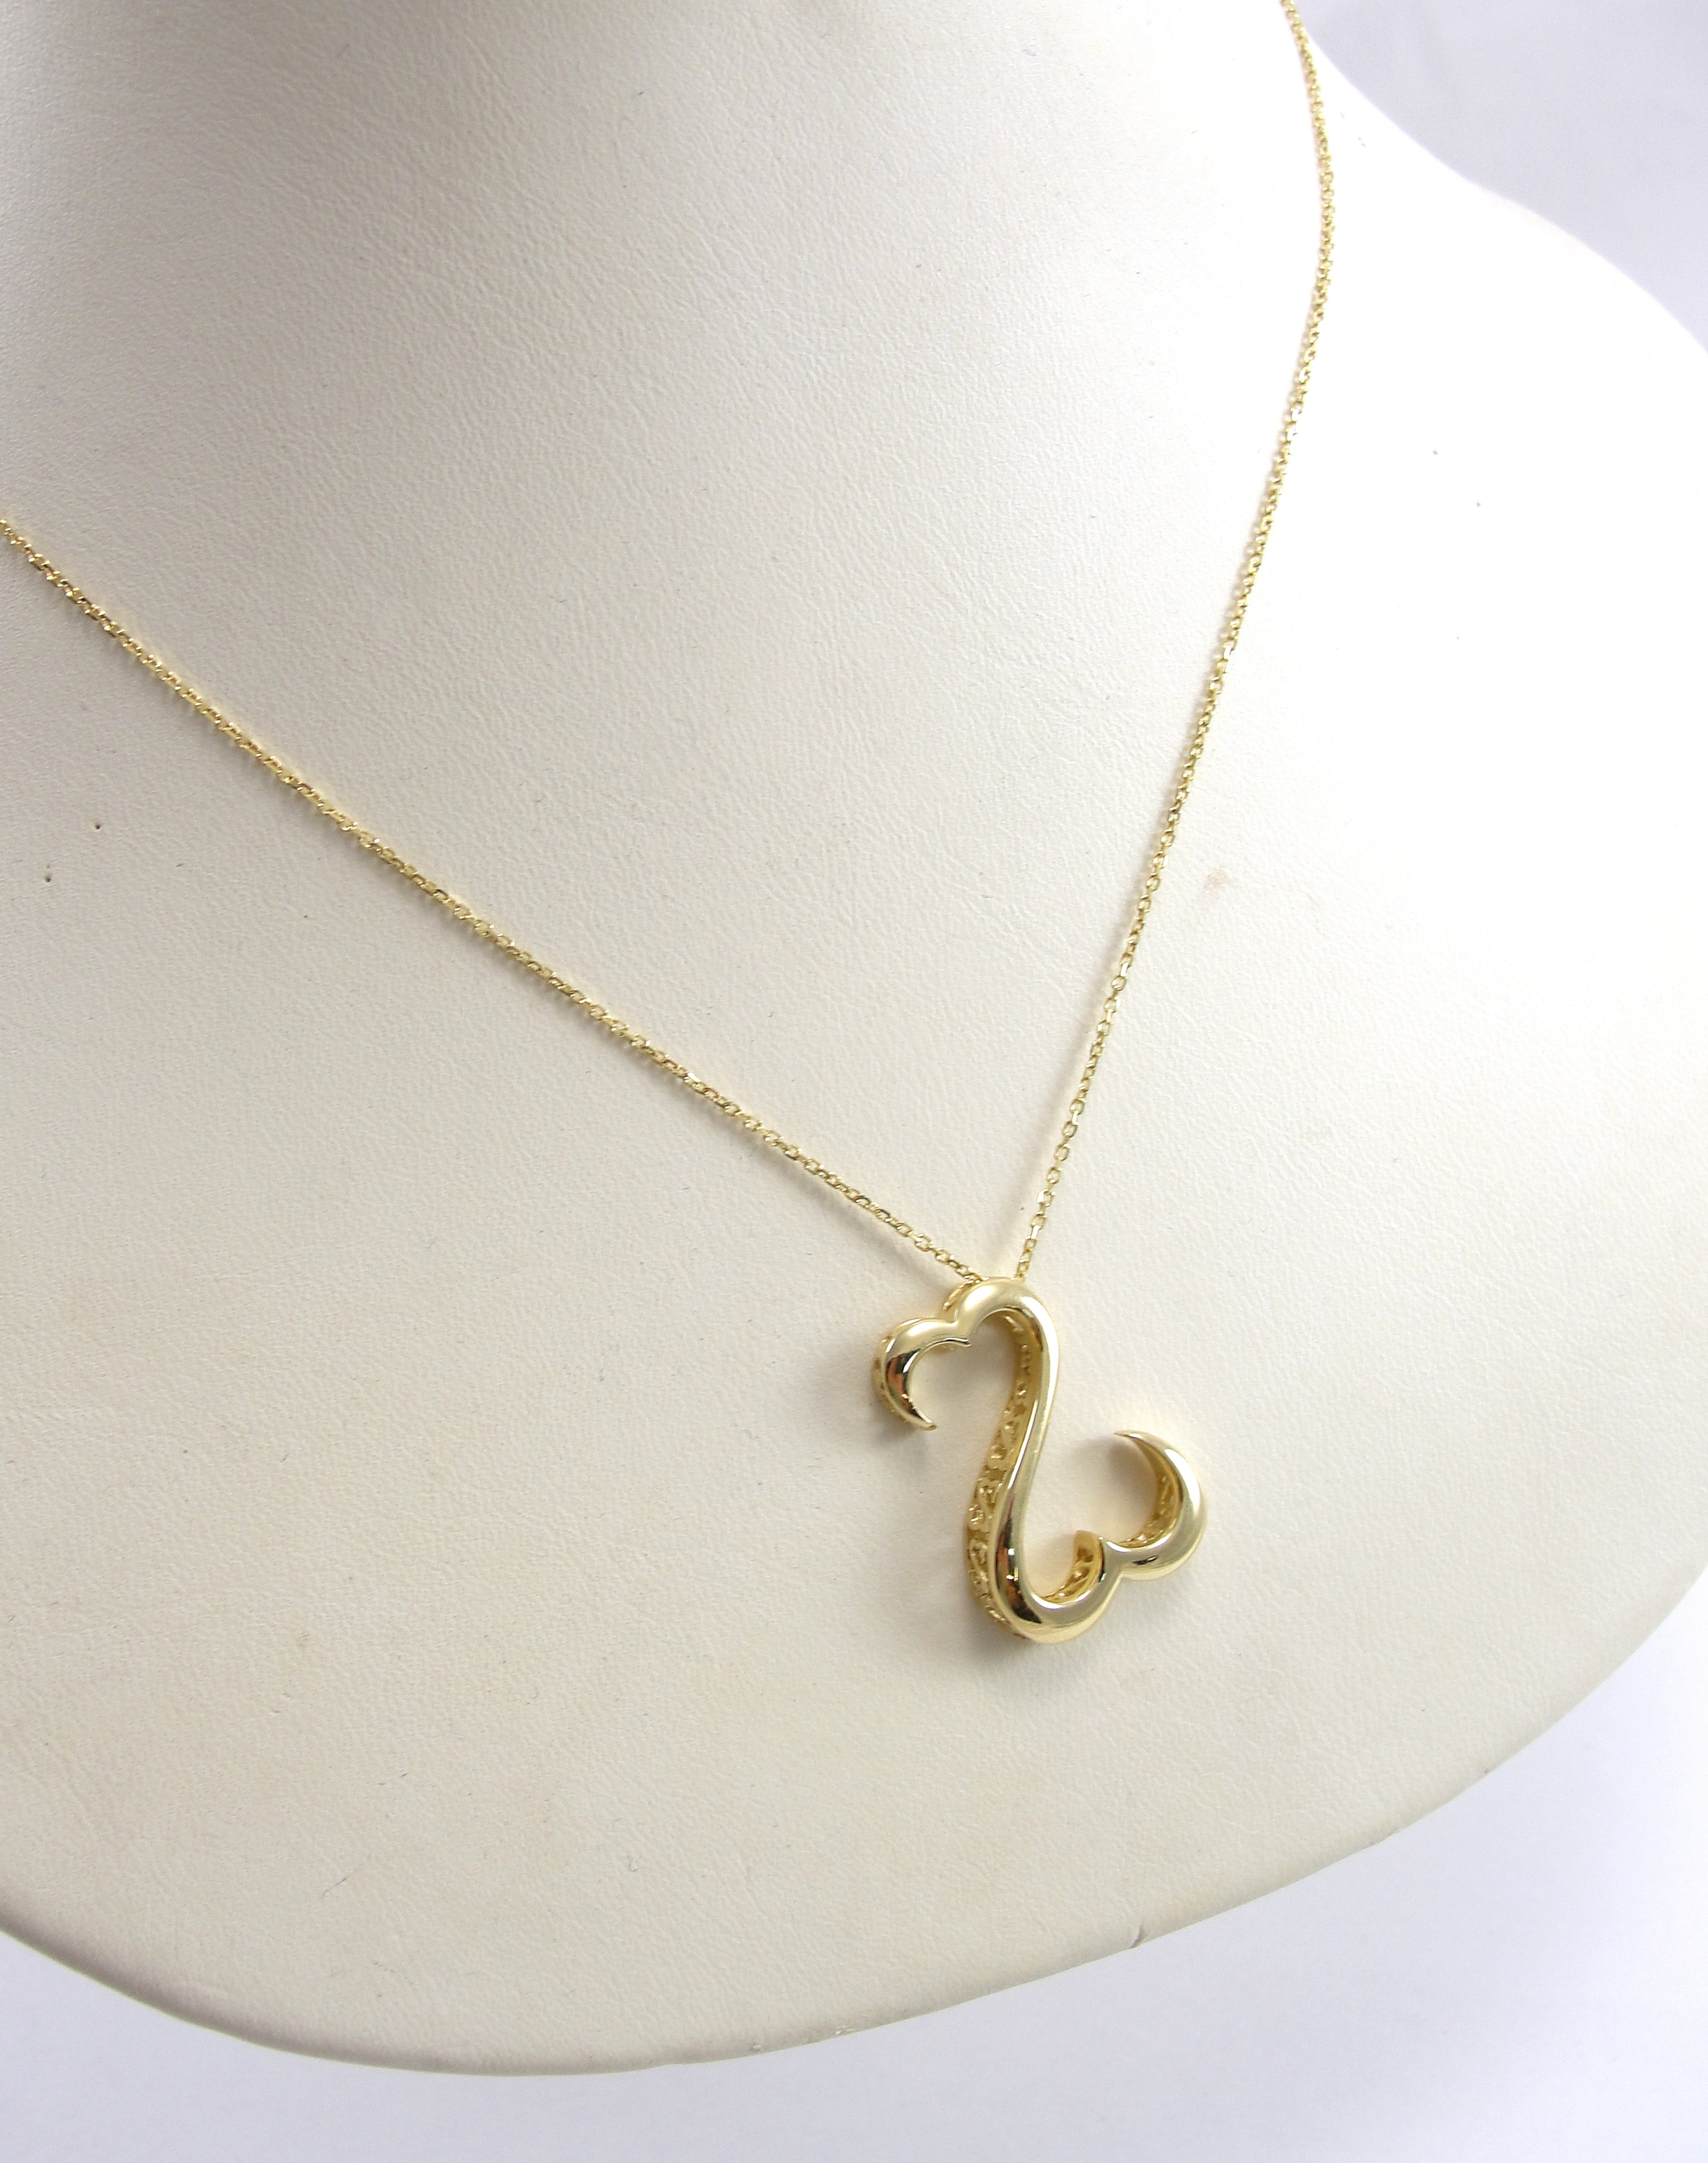 watches filled with free chain necklace open product overstock gold heart shipping silhouette in jewelry pendant today